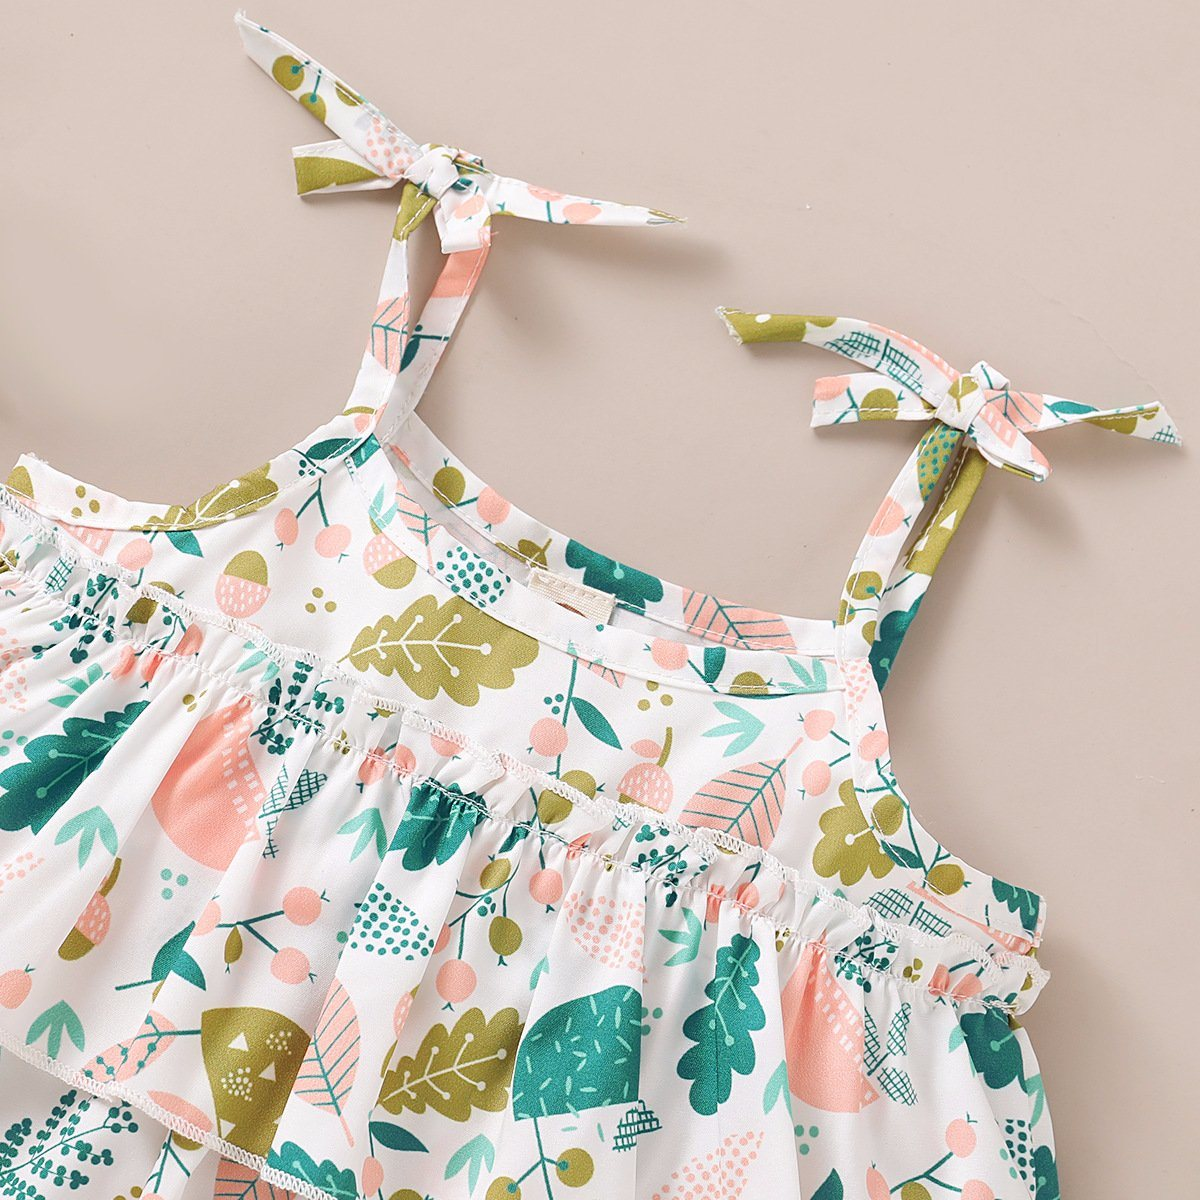 China Cusotmized Summer High Quality 100% Cotton Top and Bottom Fashion Set  Printed Pattern for Baby Girls Kids Children Cool Wearing Clothes Photos &  Pictures - Made-in-china.com